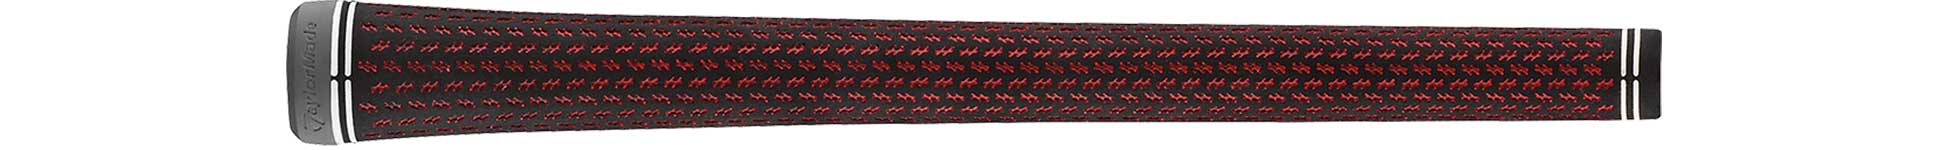 Crossline 360 Black/Red